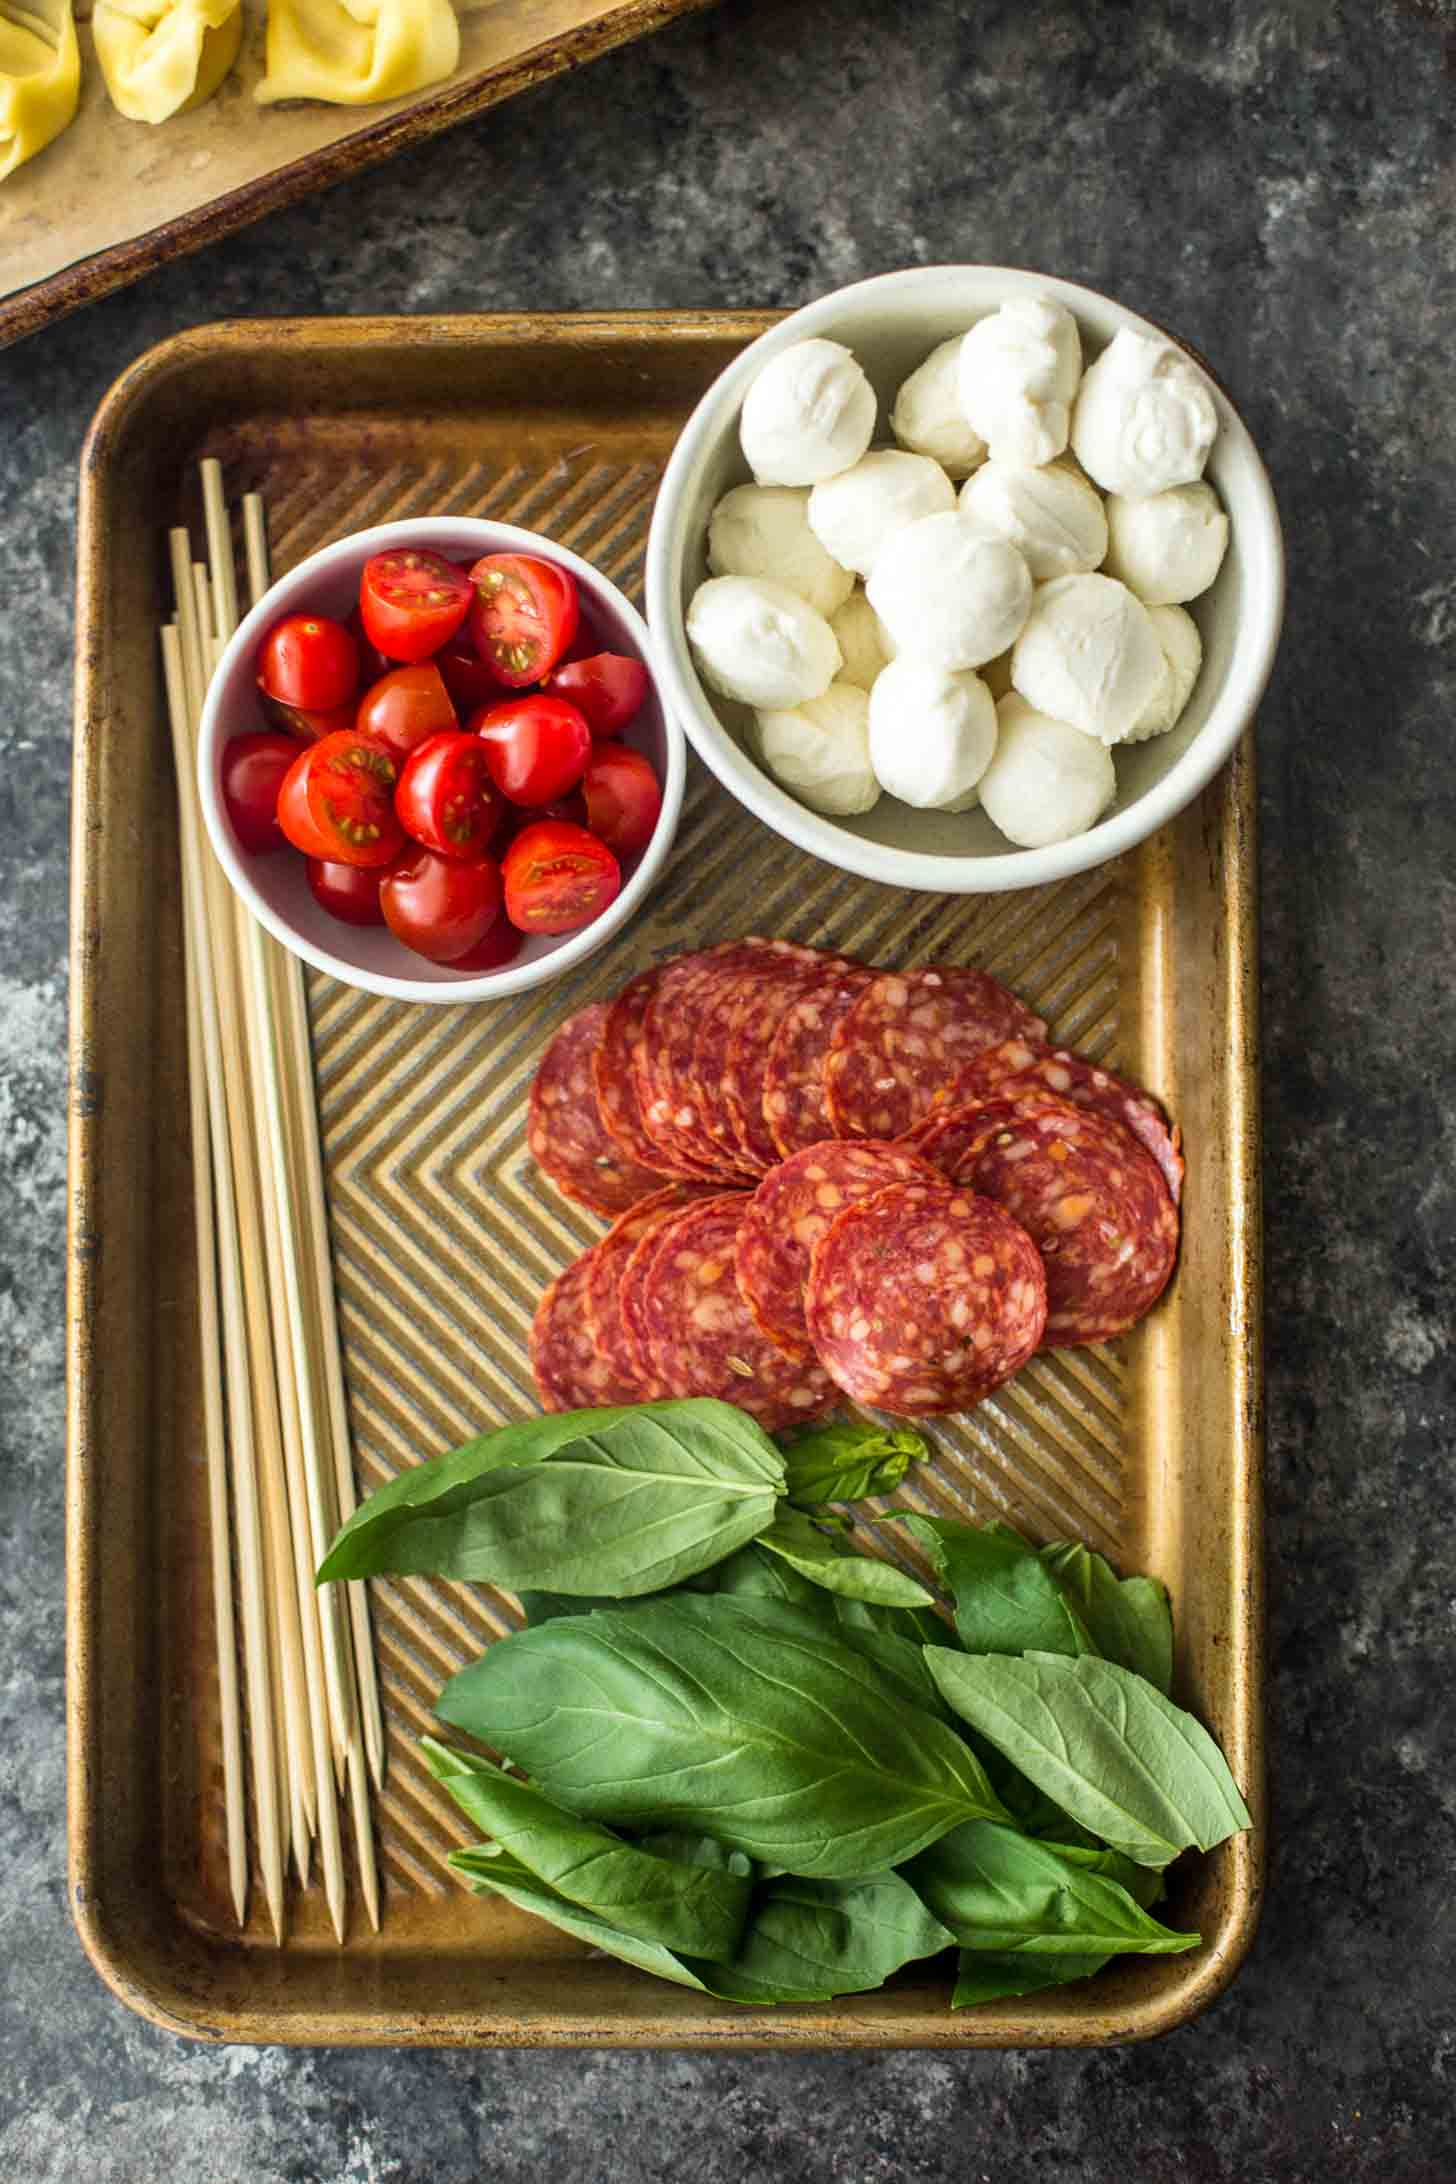 ingredients for pasta salad skewers, including mozzarella pearls, basil, cherry tomatoes and pepperoni